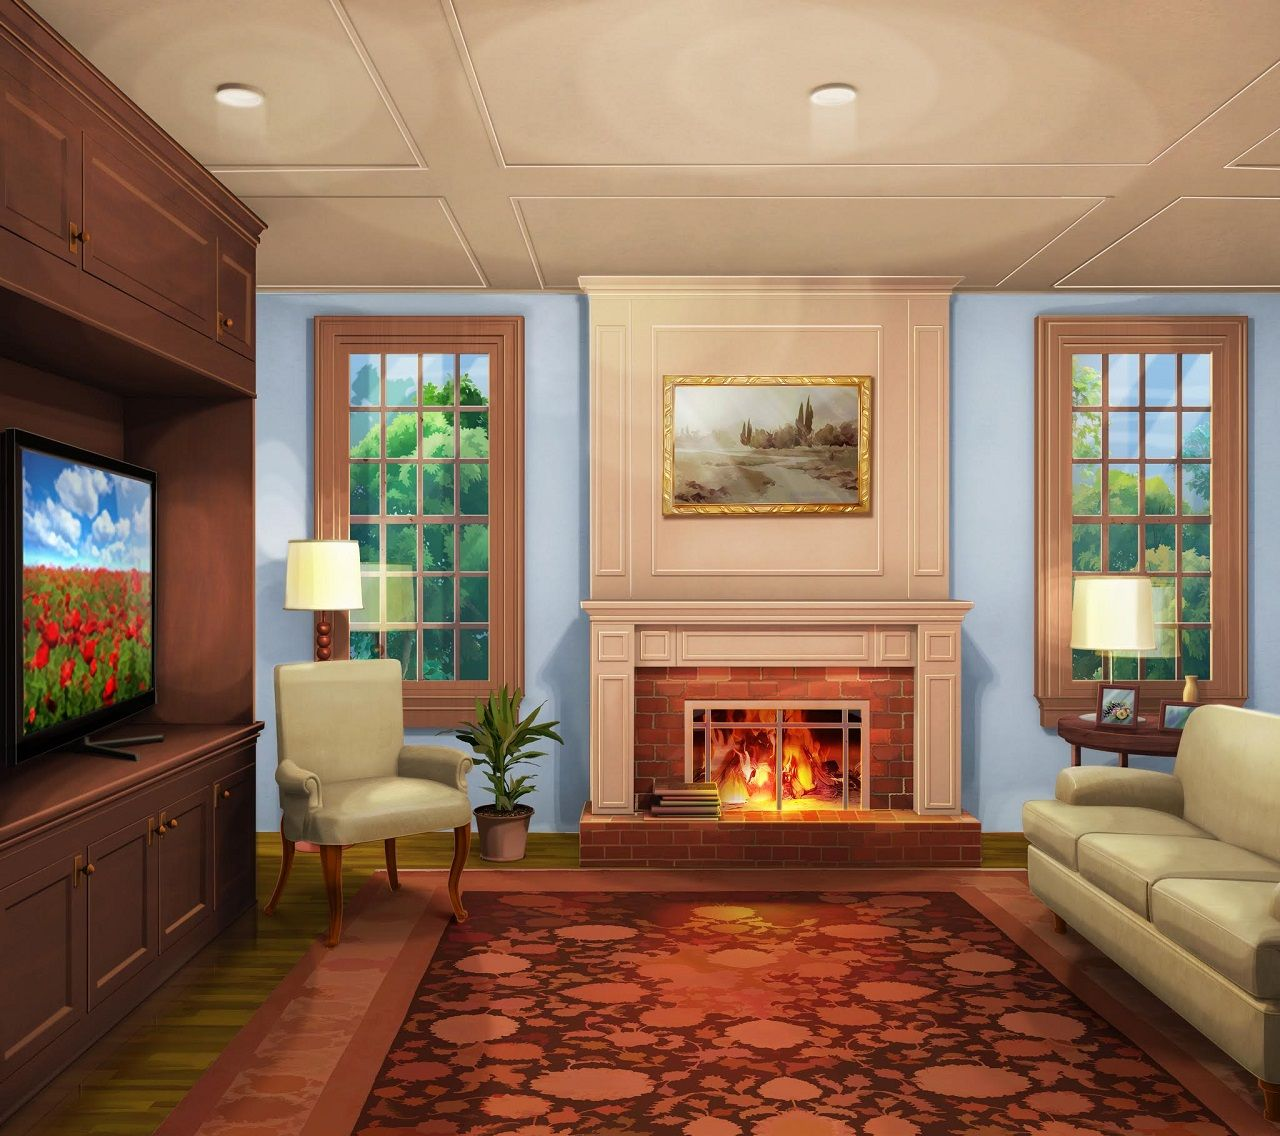 Room Background: INT. CLASSIC LIVINGROOM DAY MED #EpisodeInteractive